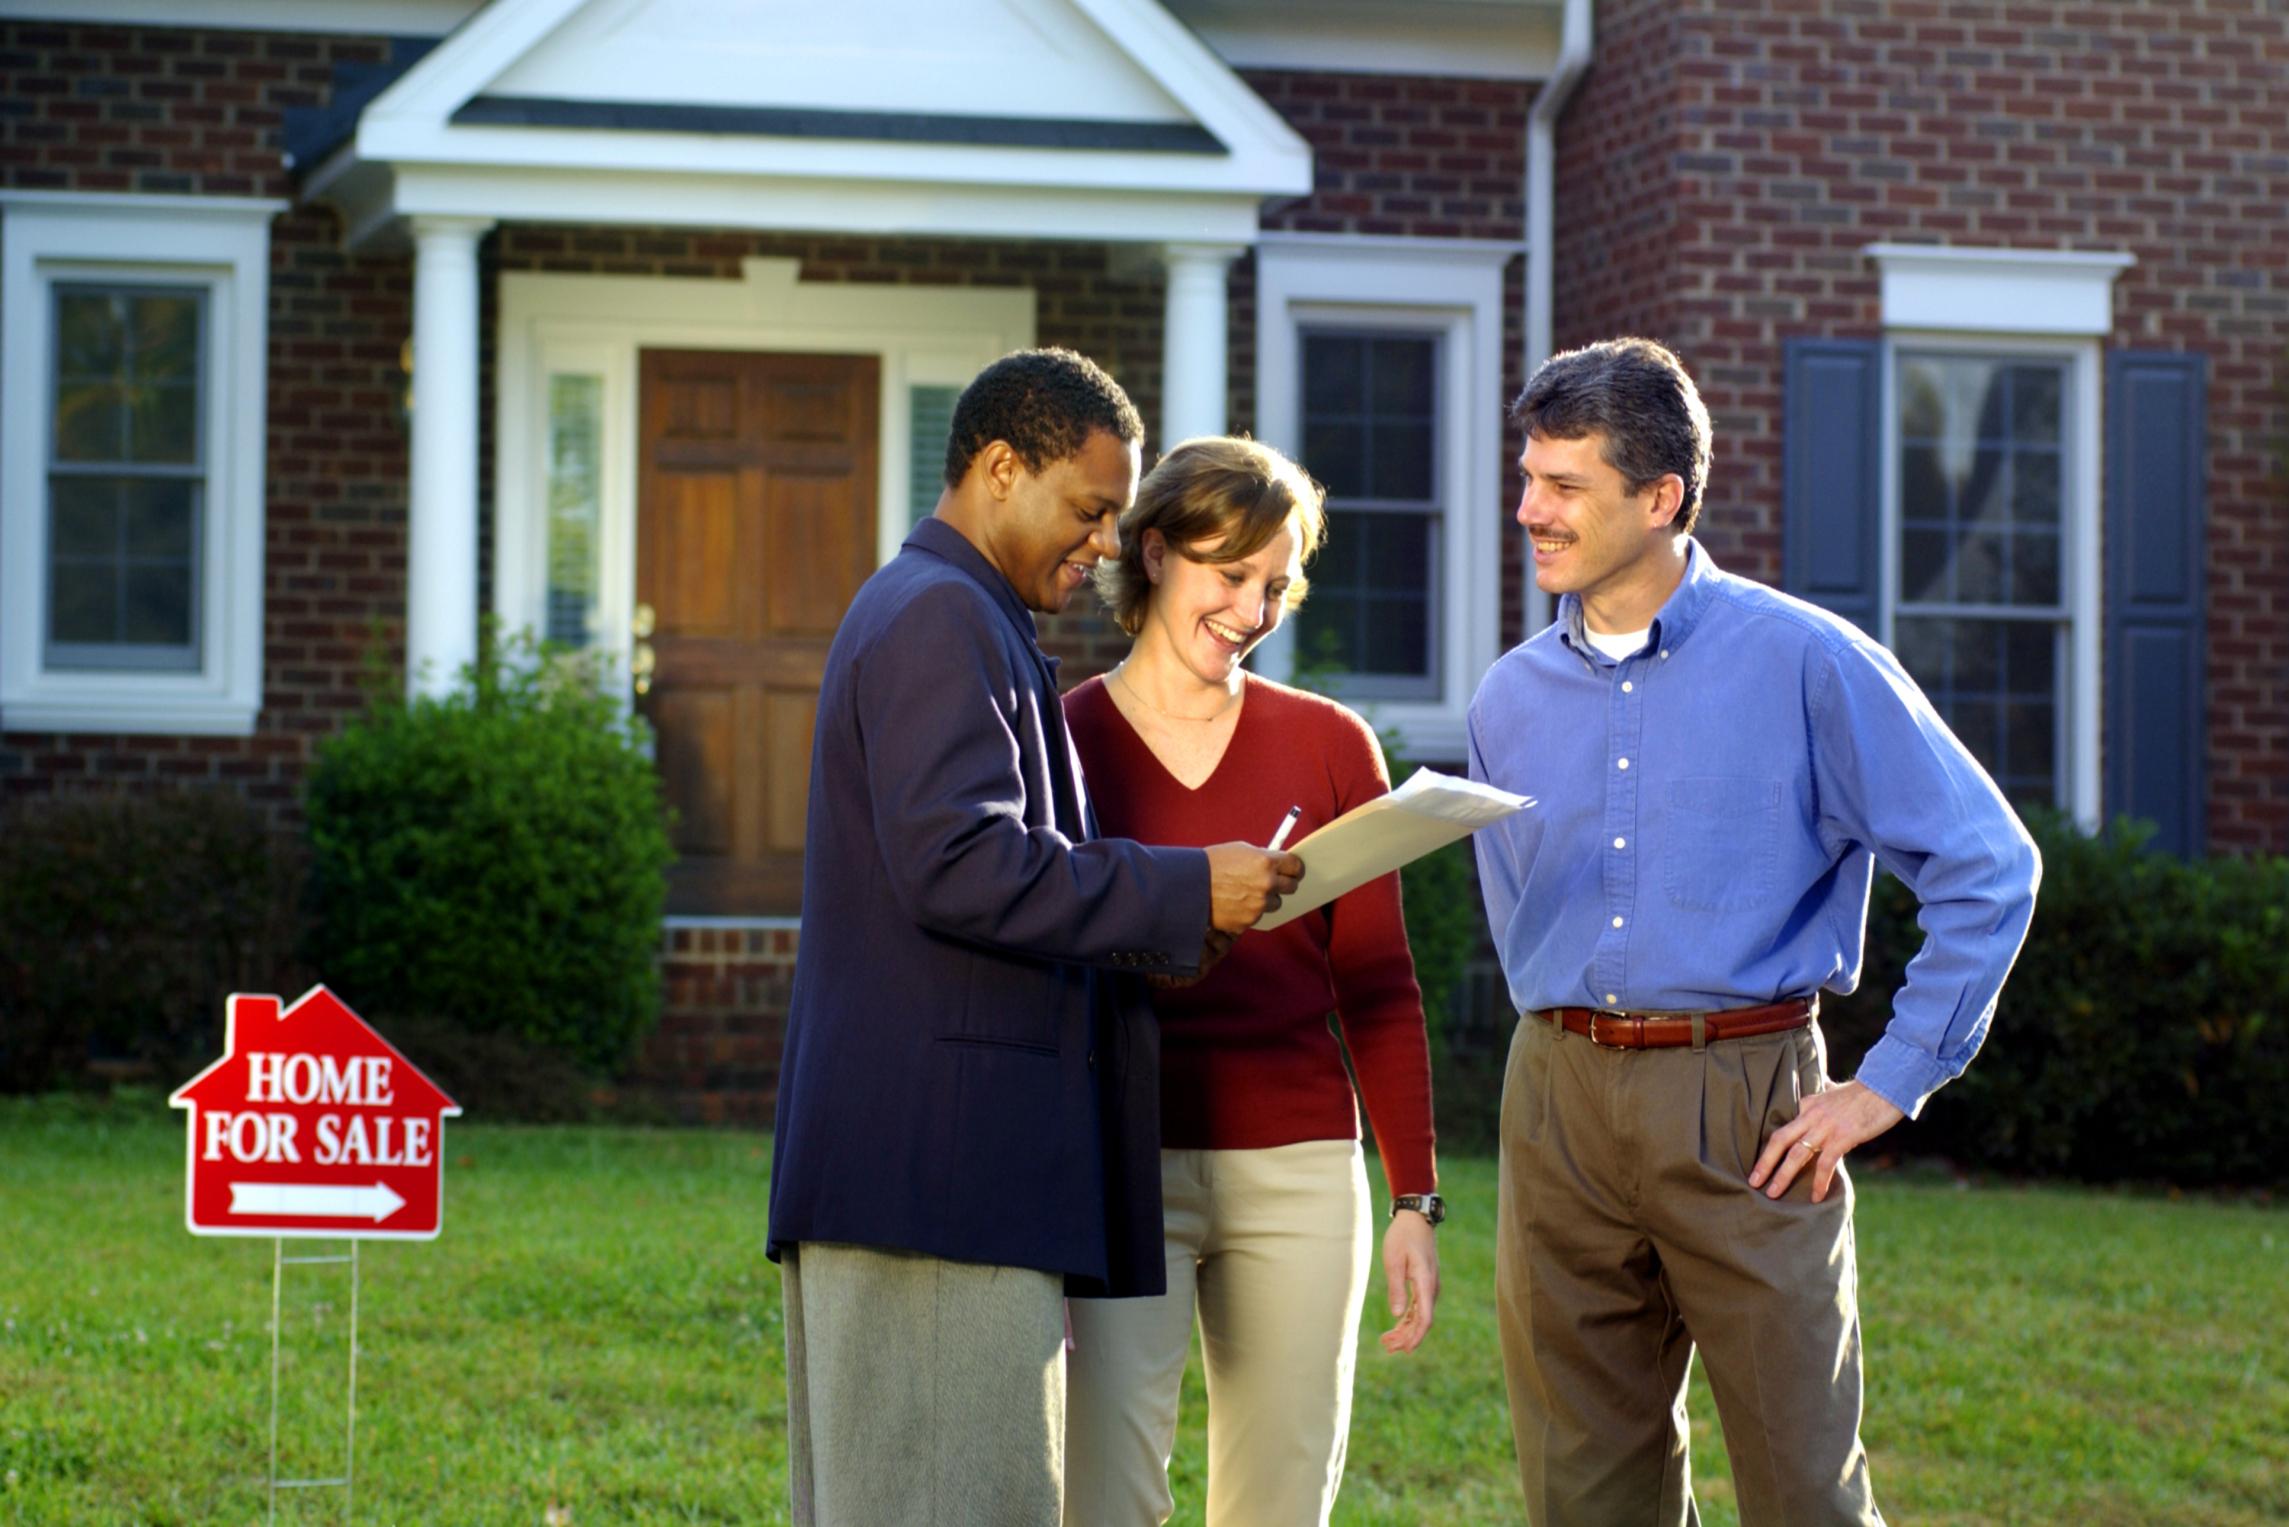 Bud ing Conundrum Is It Smarter to Rent or Buy a House